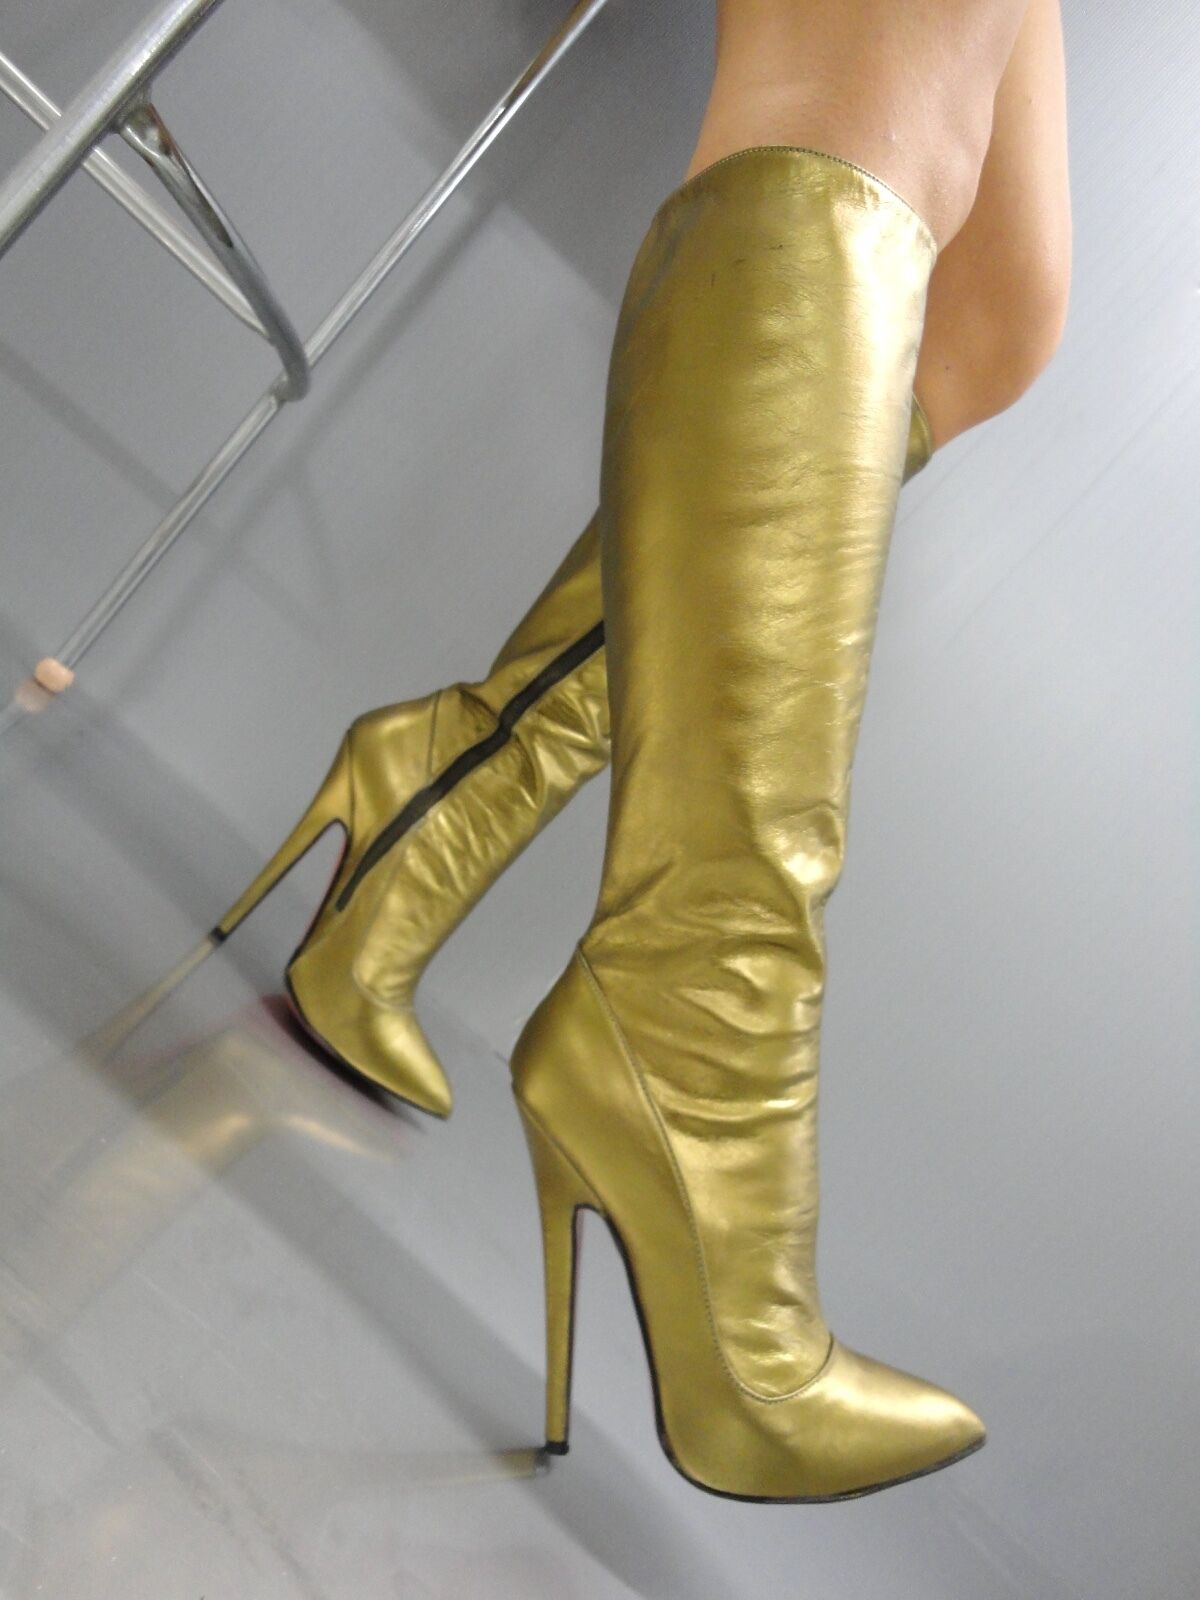 MORI MADE IN ITALY KNEE HIGHEST SEXY BOOTS STIEFEL STIVALI LEATHER GOLD ORO 45